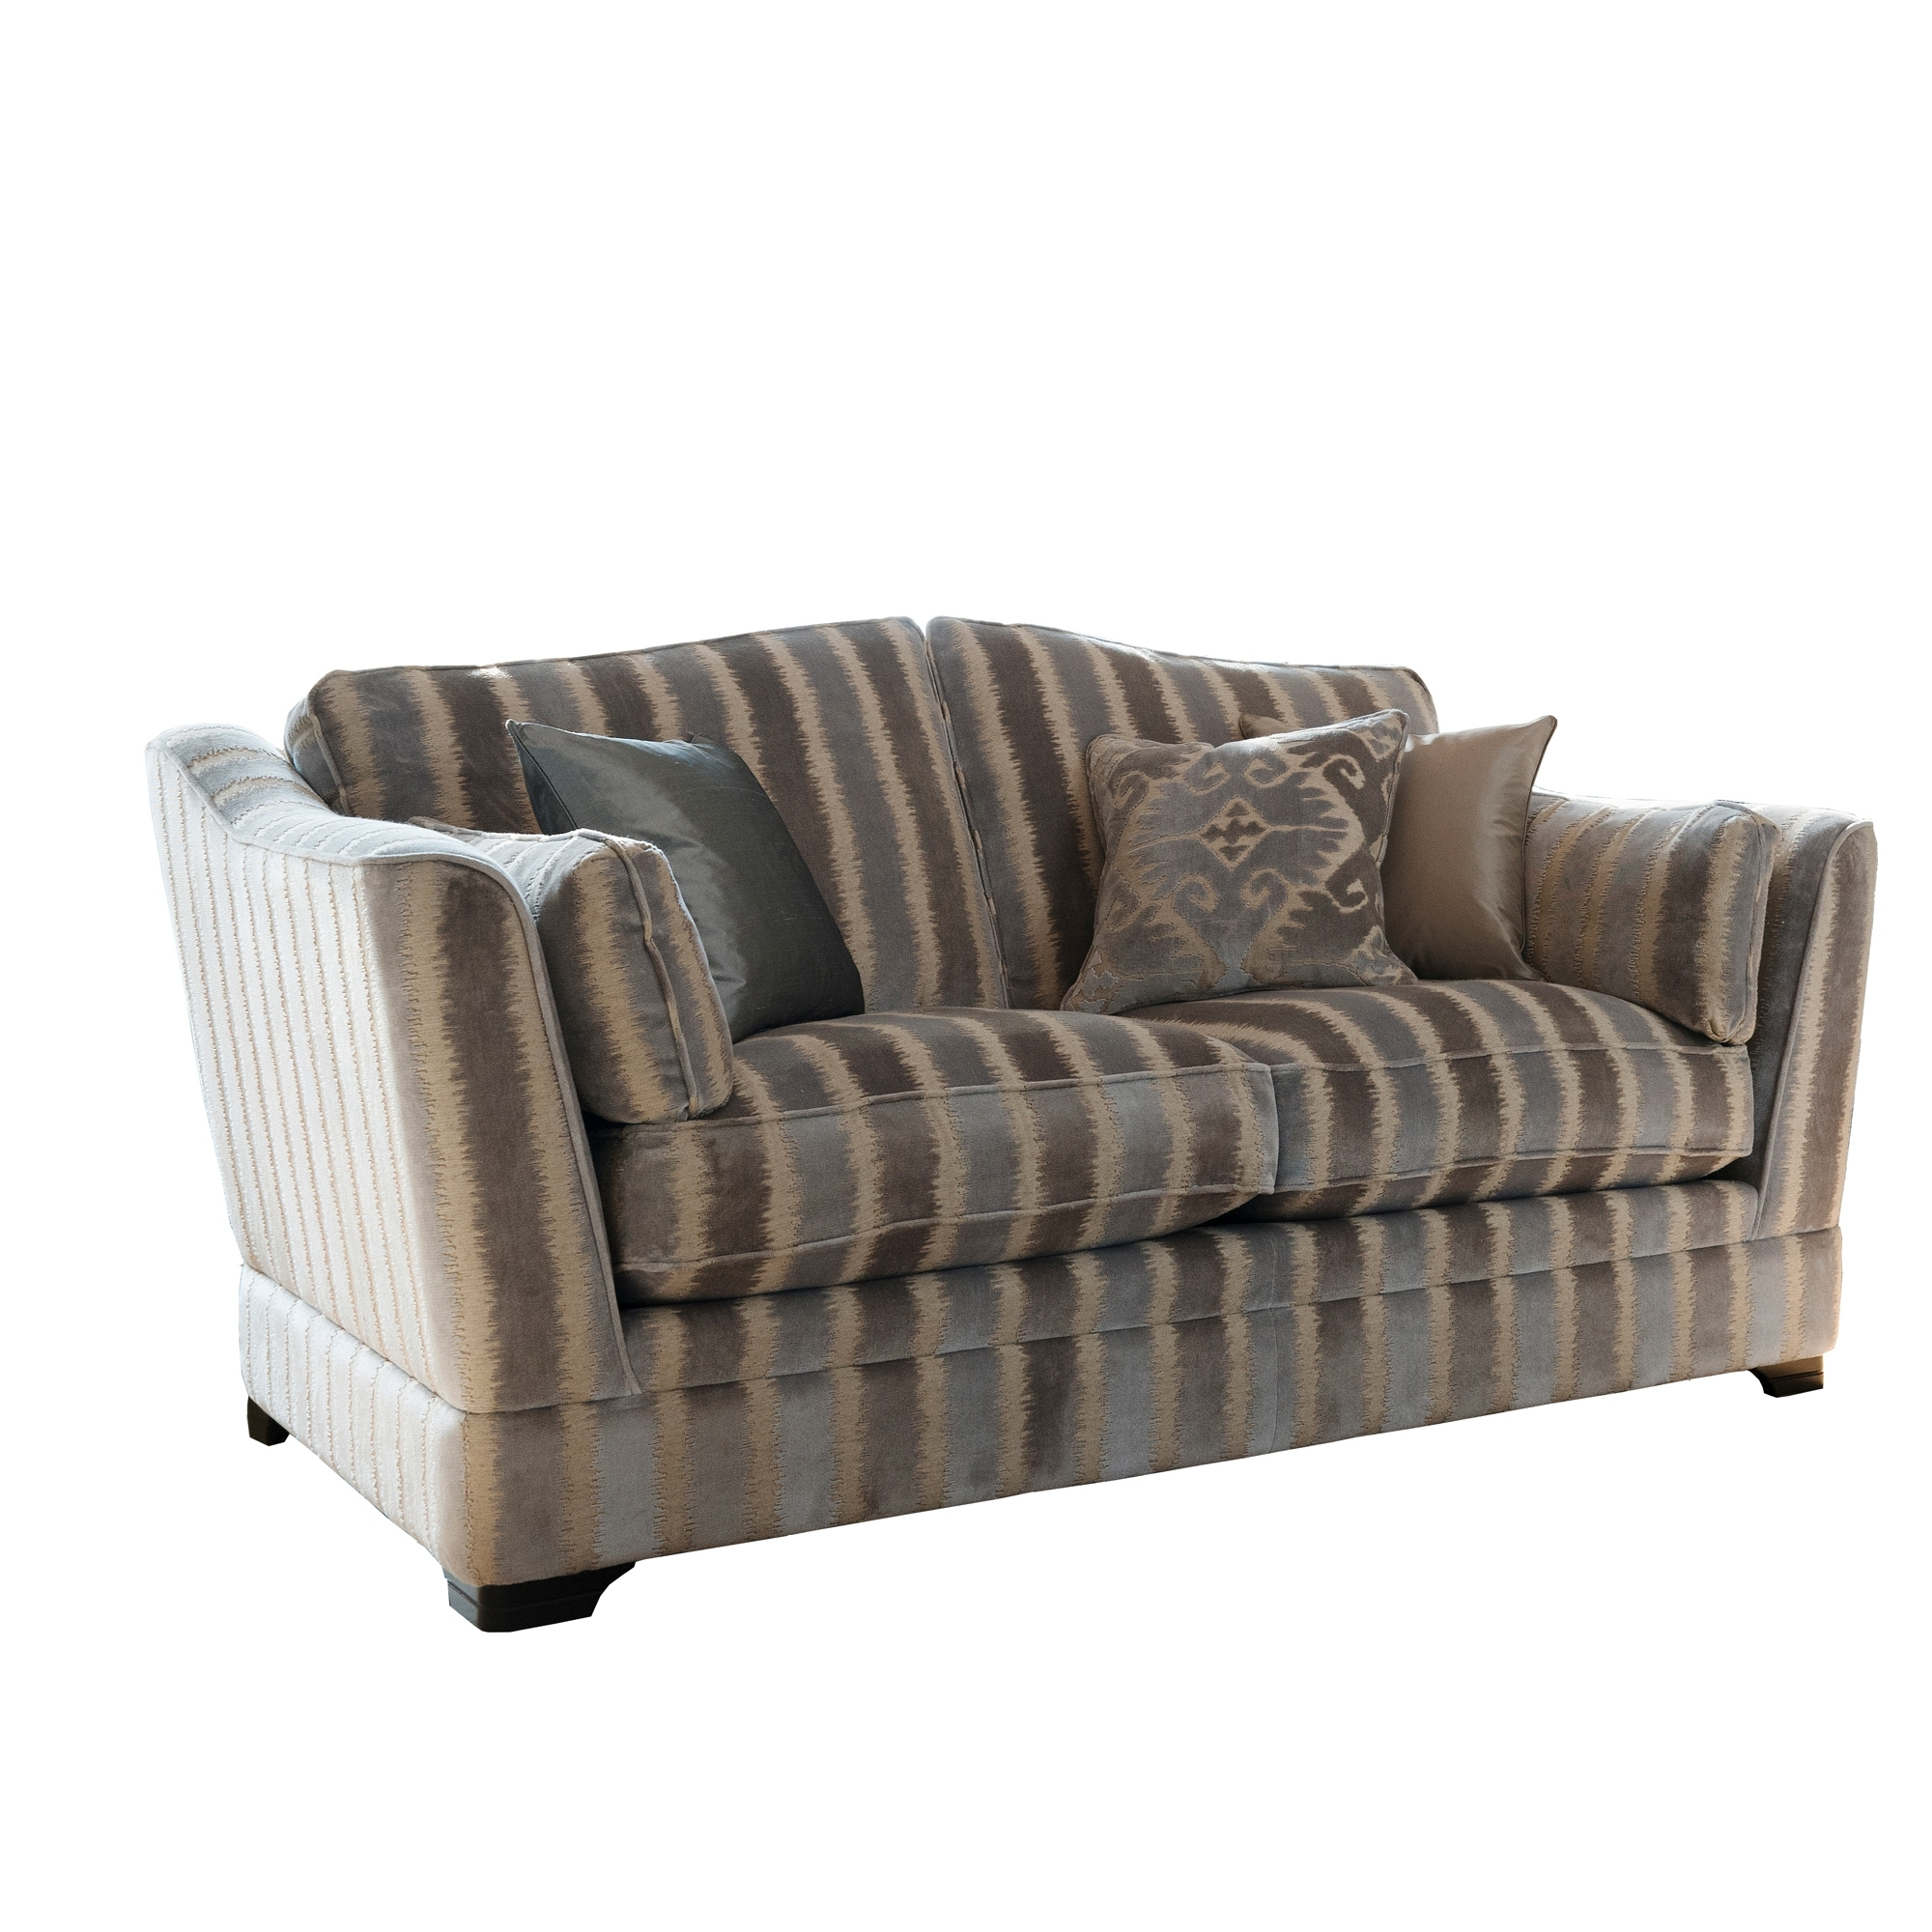 Parker Knoll Sloane Large 2 Seater Sofa All Sofas